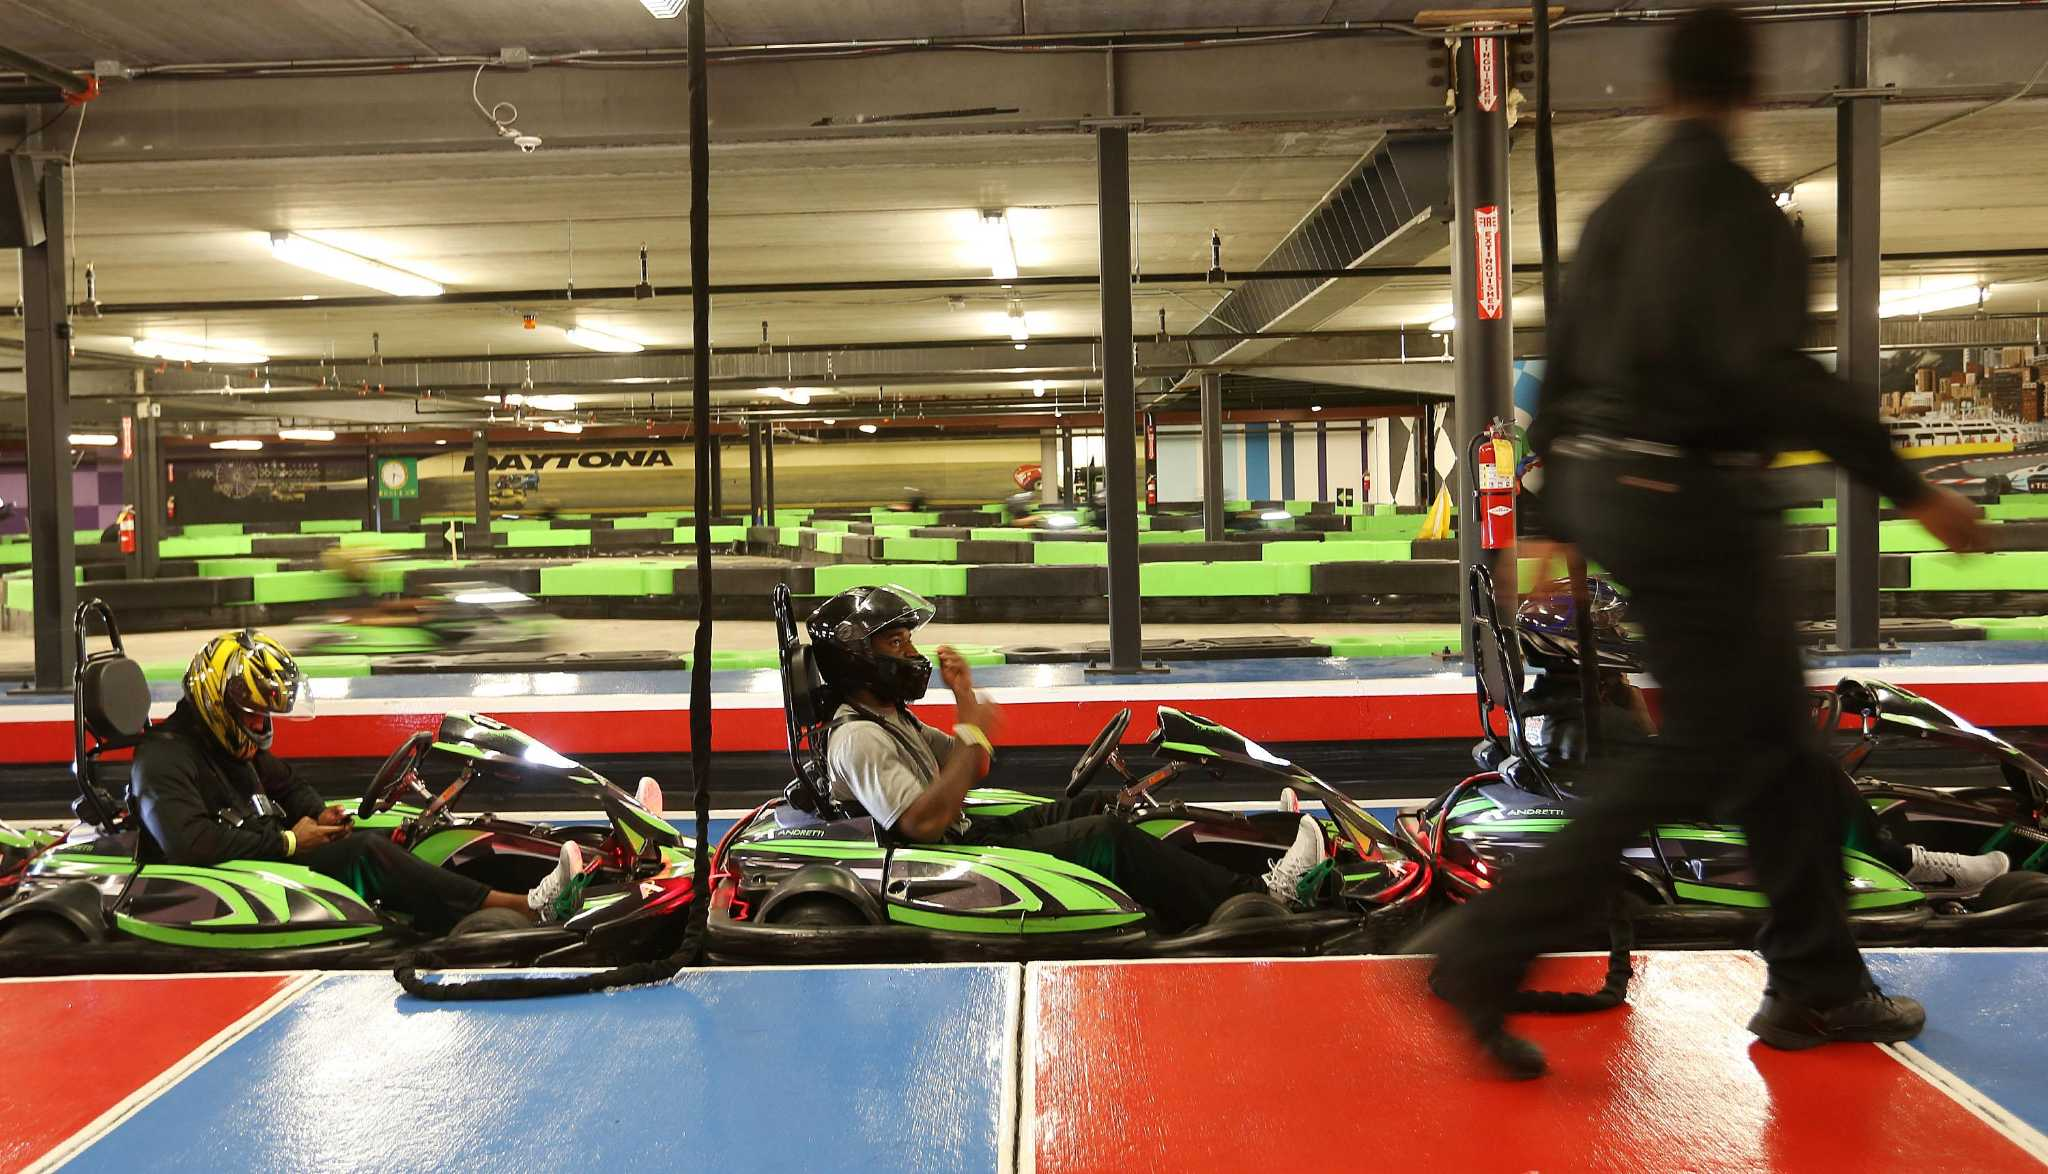 Indoor Andretti Go Cart Facility With Full Service Bar